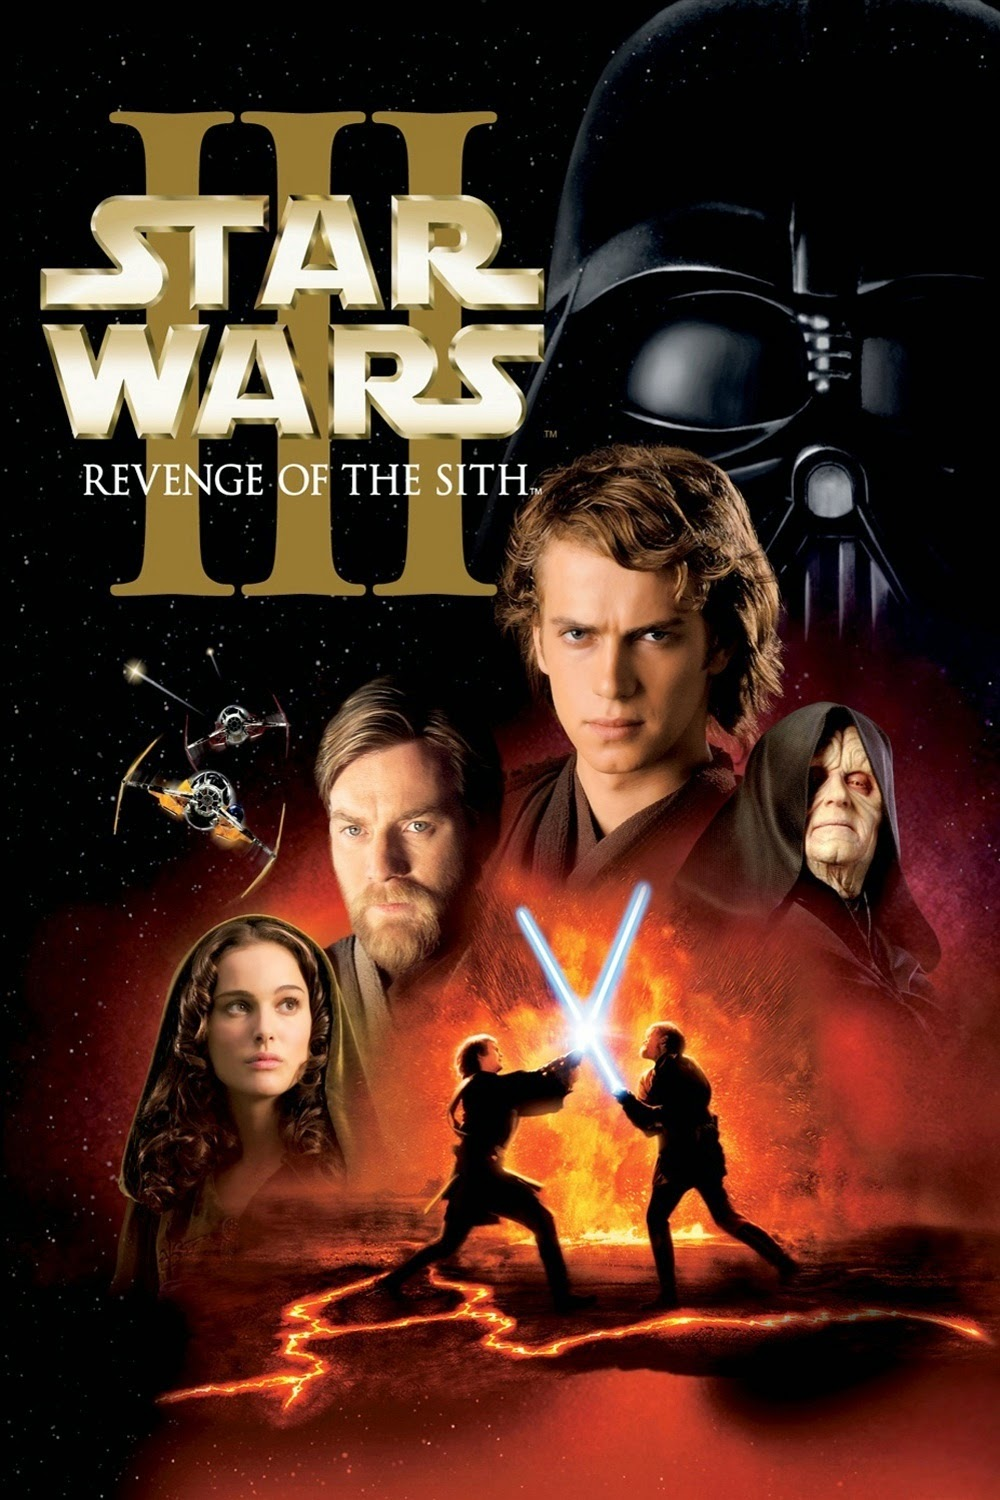 Long Jon Bronze Reviews Star Wars Episode Iii Revenge Of The Sith Review